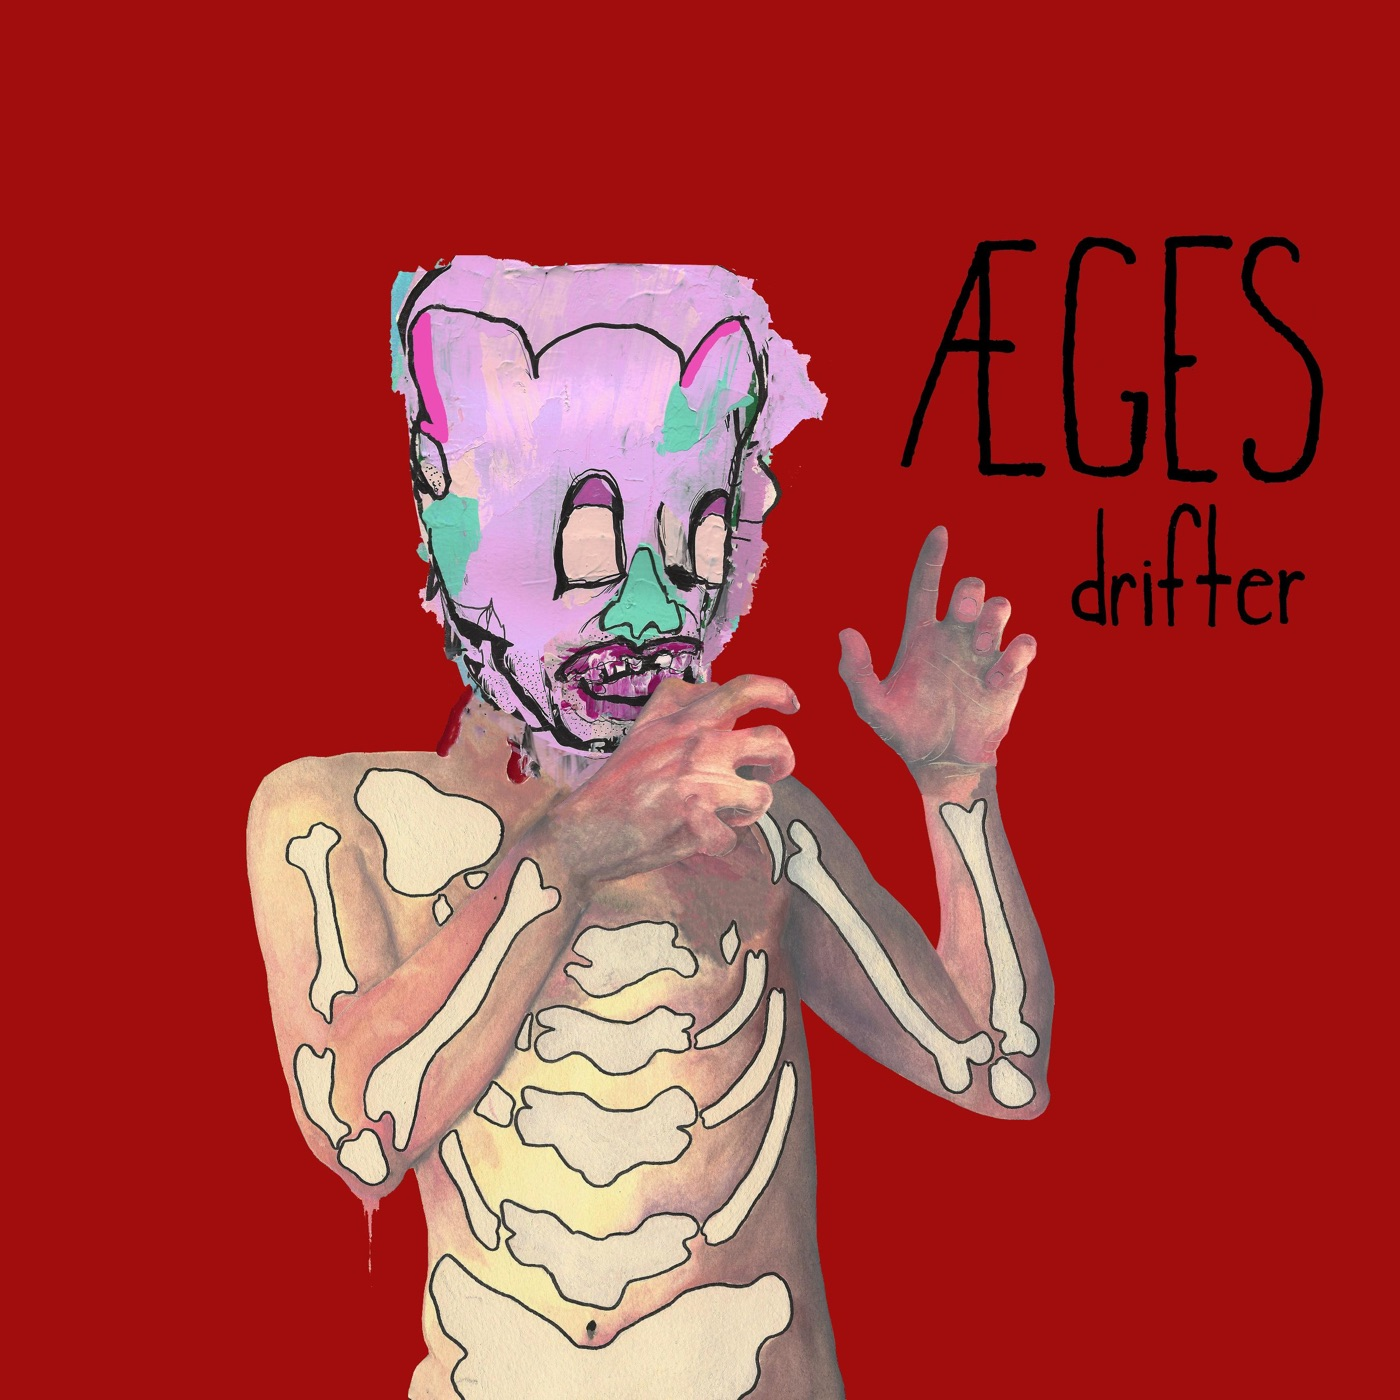 Aeges - Drifter [Single] (2018)